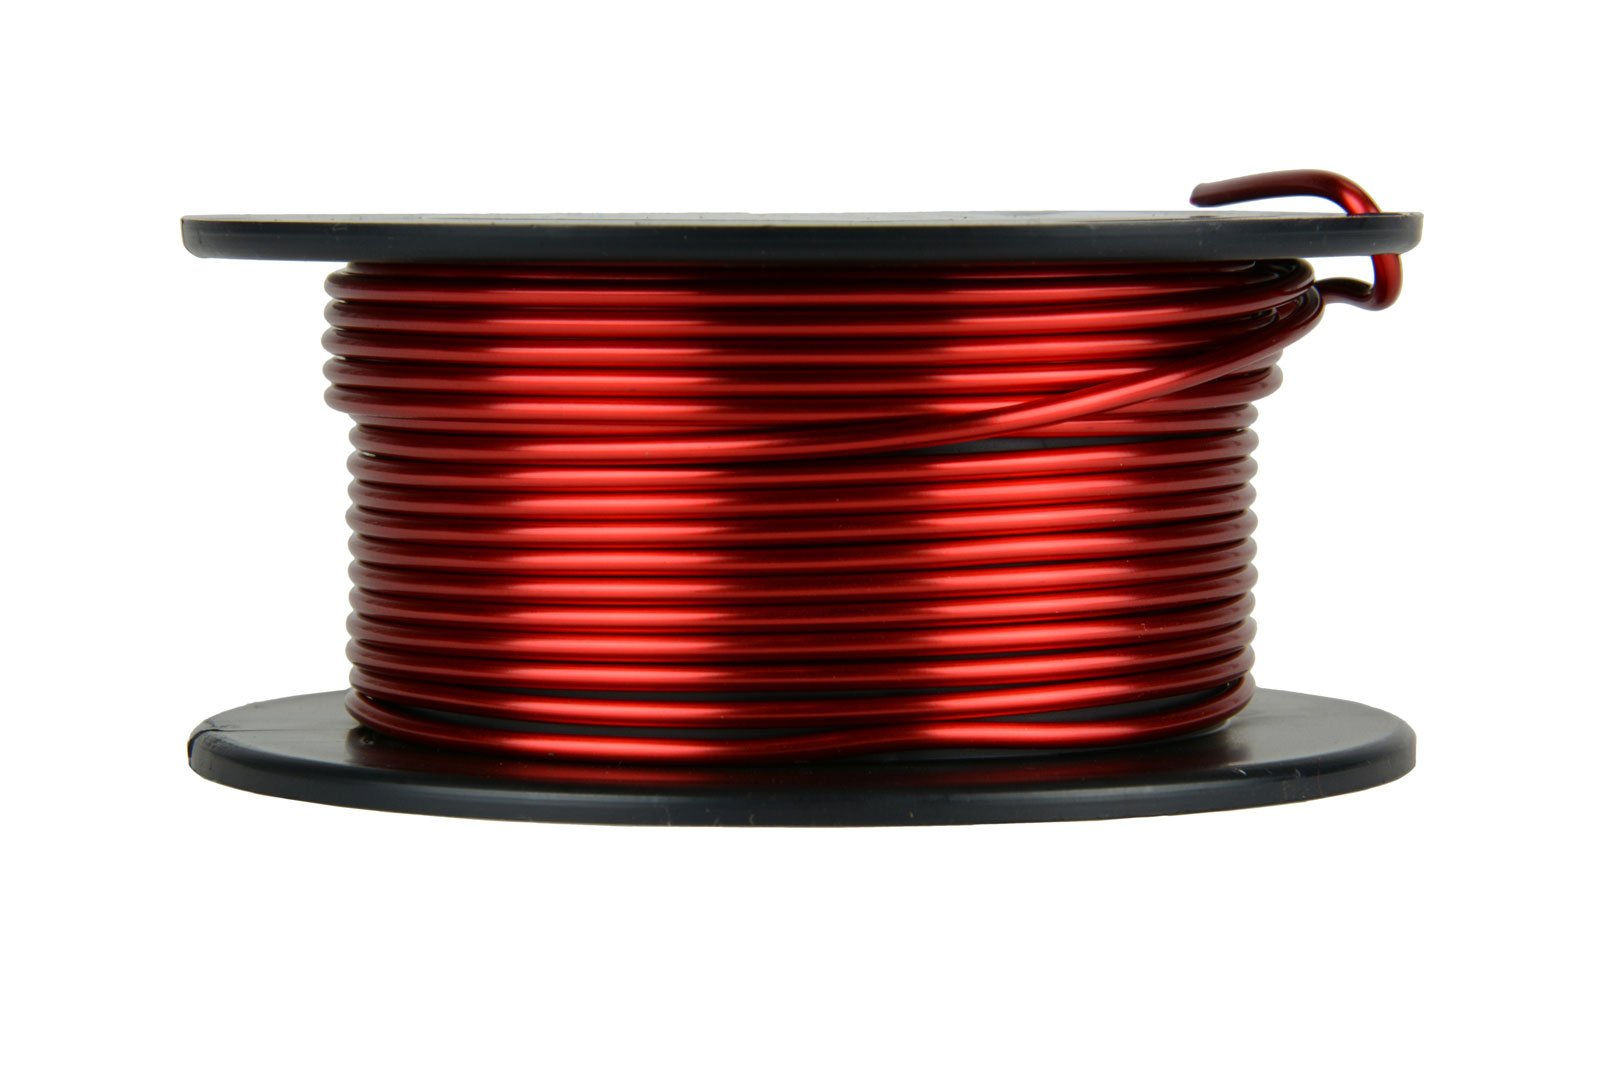 TEMCo 12 AWG Copper Magnet Wire - 4 oz 12 ft 155°C Magnetic Coil Red